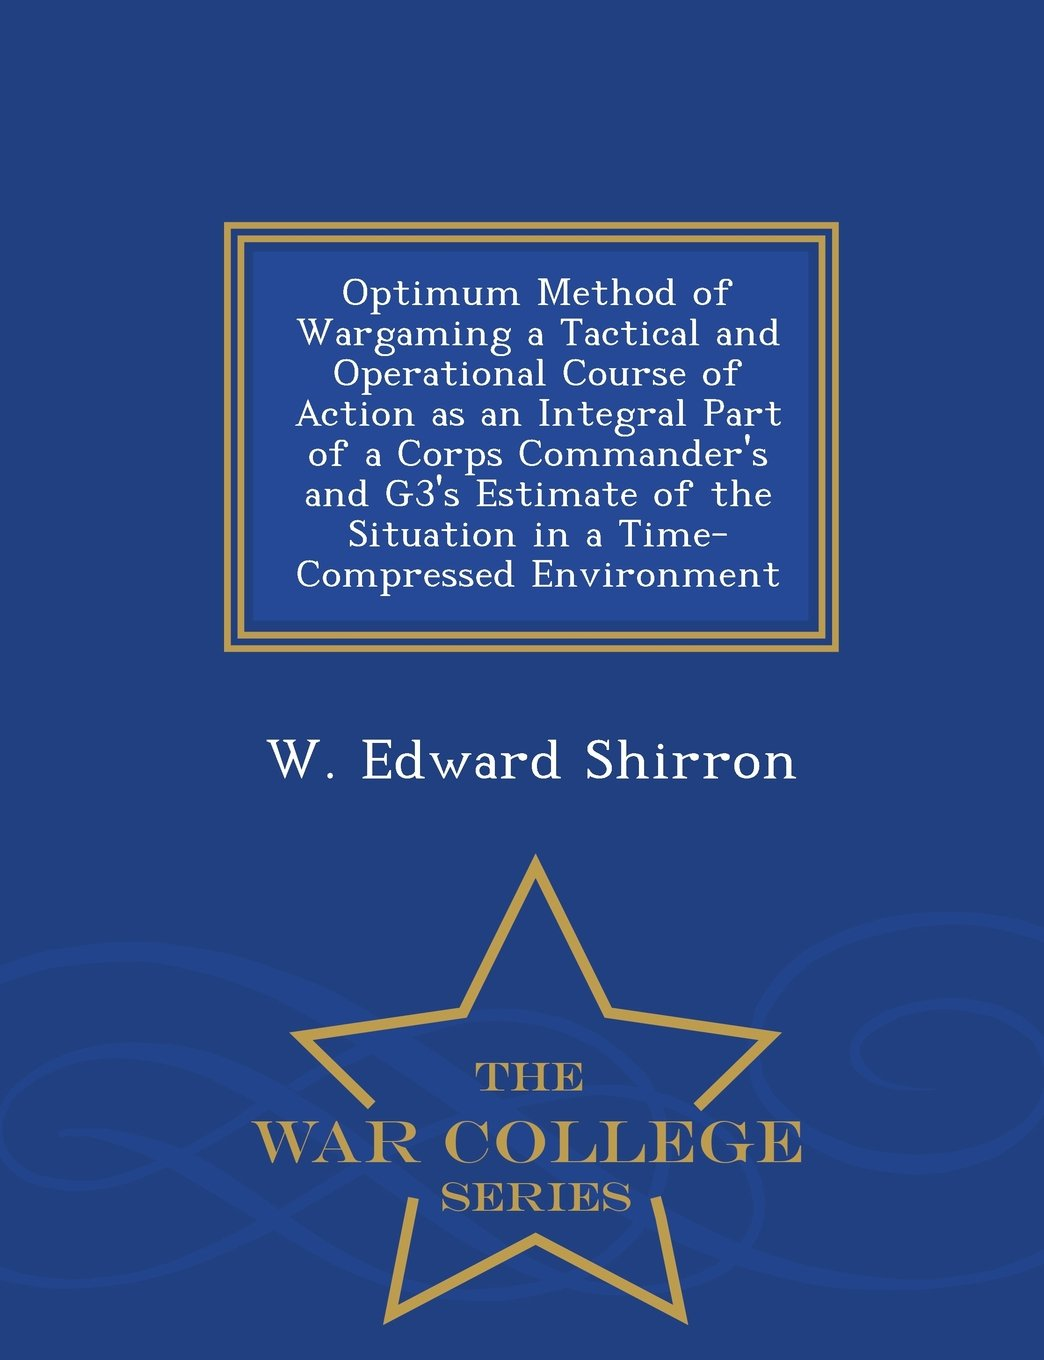 Download Optimum Method of Wargaming a Tactical and Operational Course of Action as an Integral Part of a Corps Commander's and G3's Estimate of the Situation ... Environment - War College Series pdf